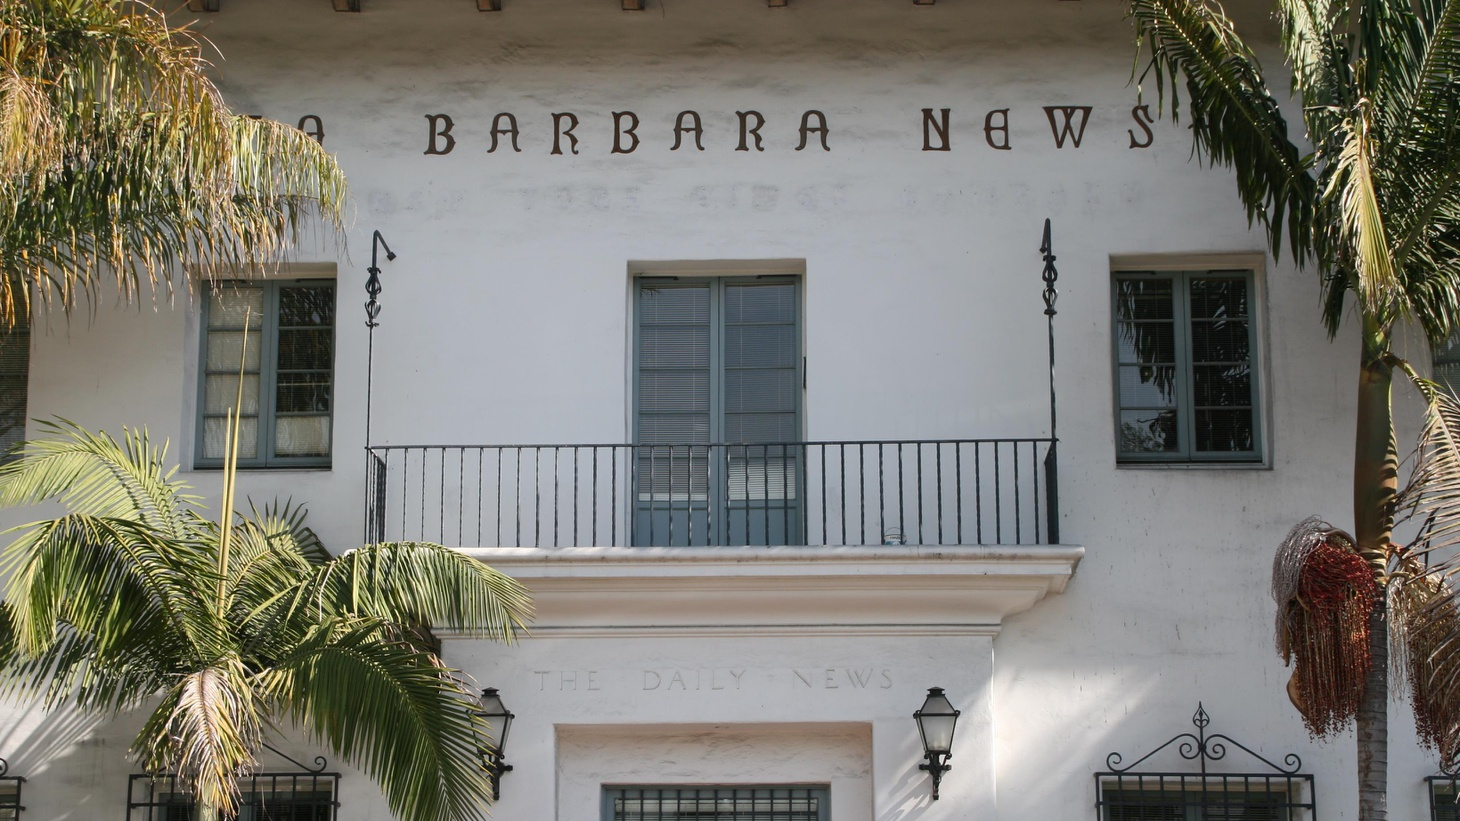 A federal court's overruled the National Labor Relations Board in a case involving journalists at the Santa Barbara News Press. It's all about allegations of union busting.